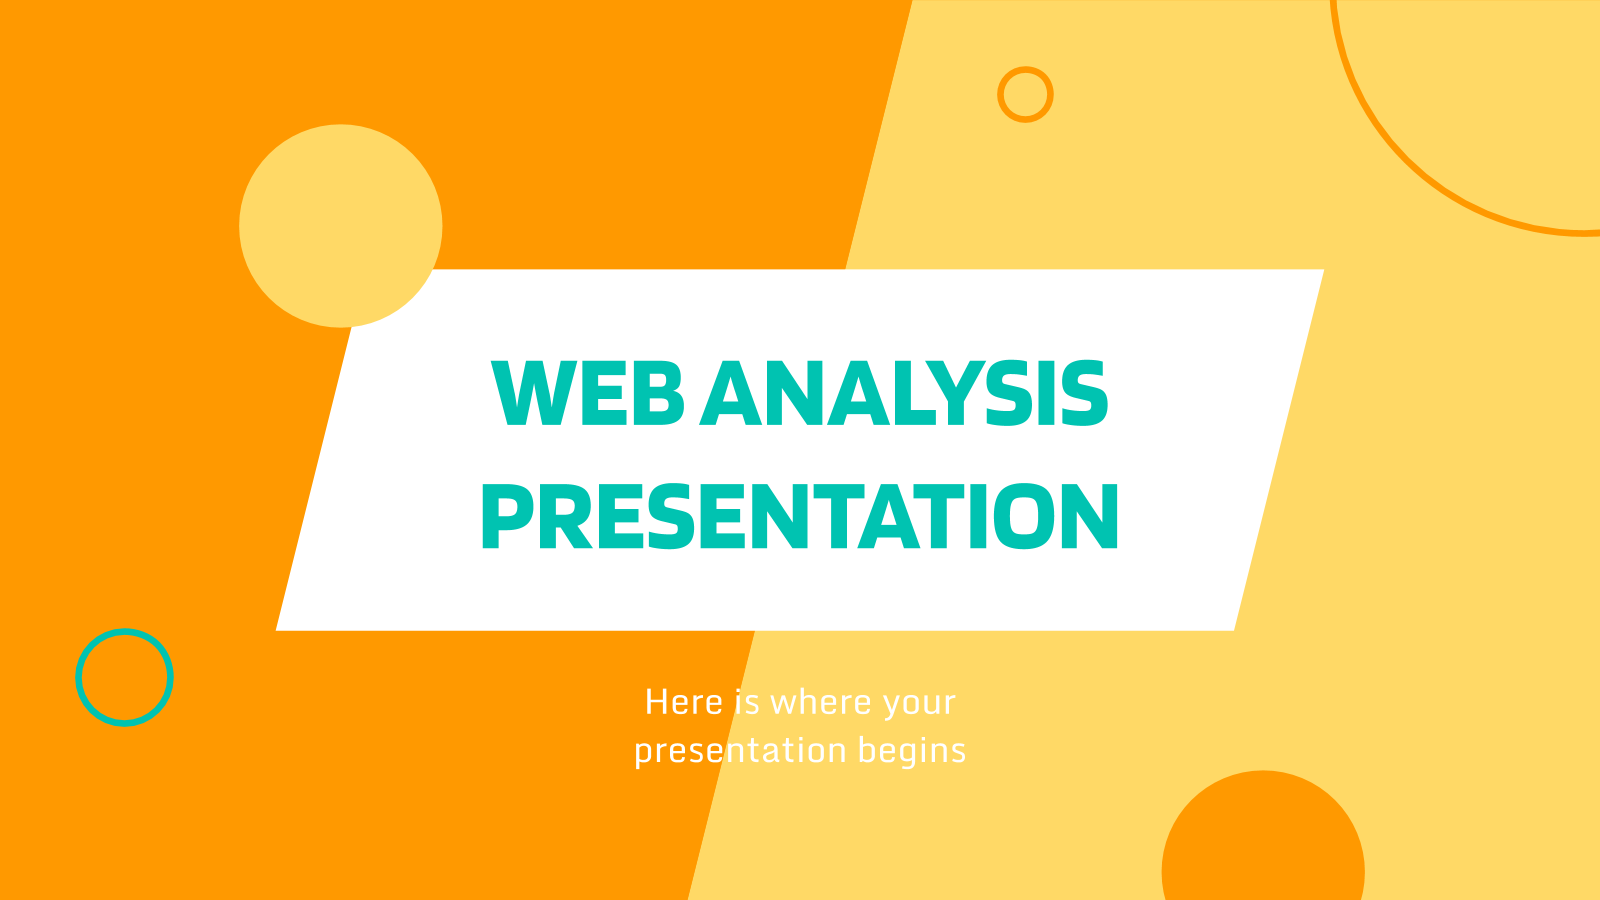 Web Analysis presentation template